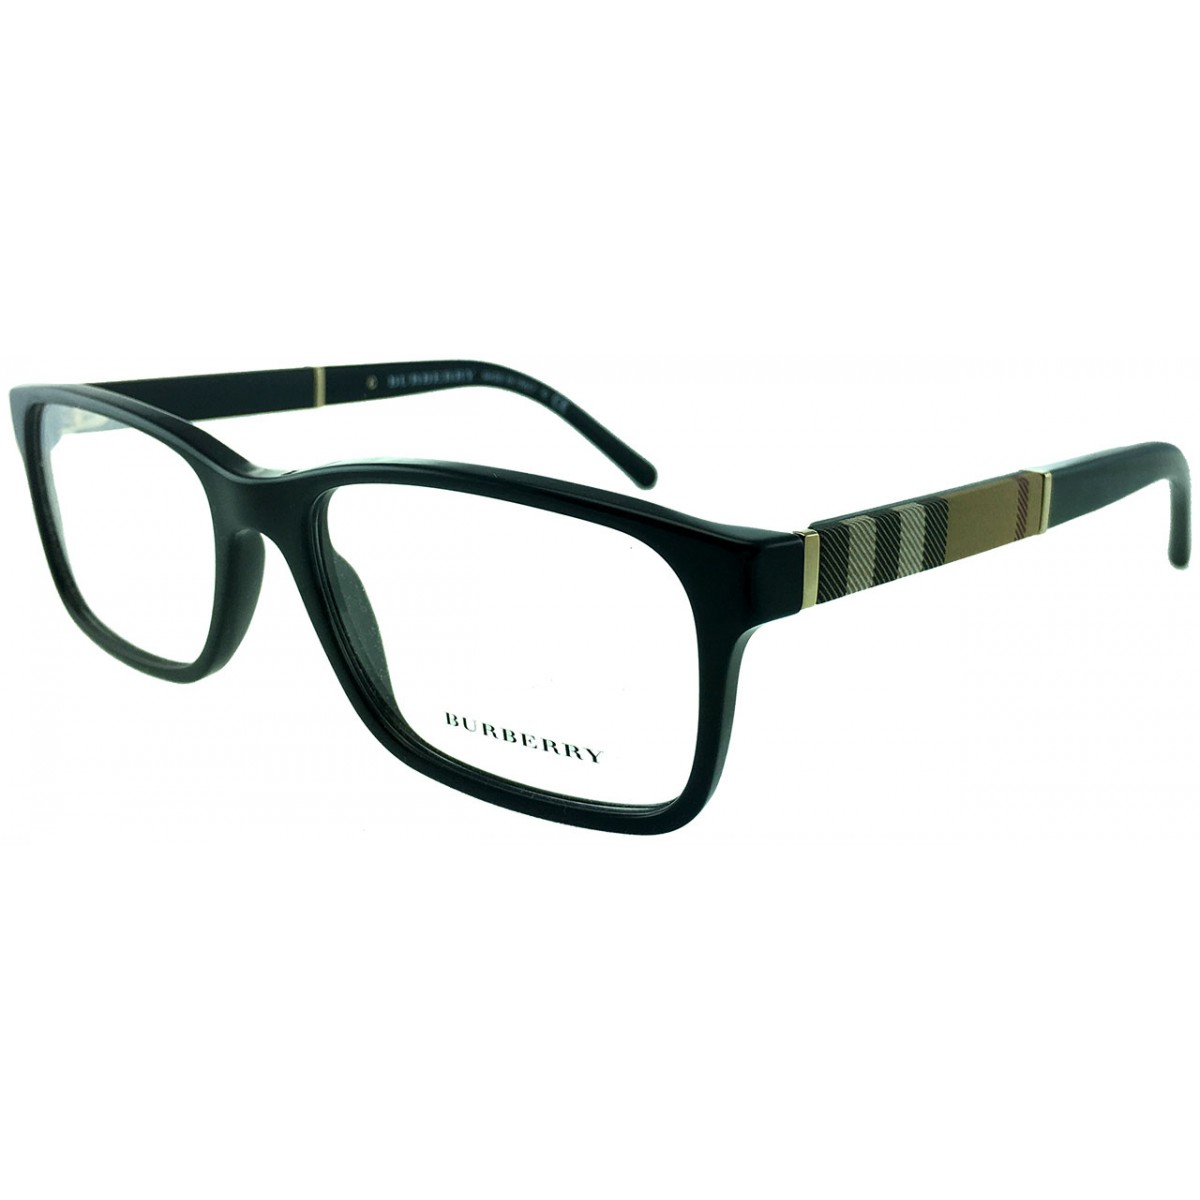 987be23a8f Online Eyeglasses with Customer Service Center in California ...